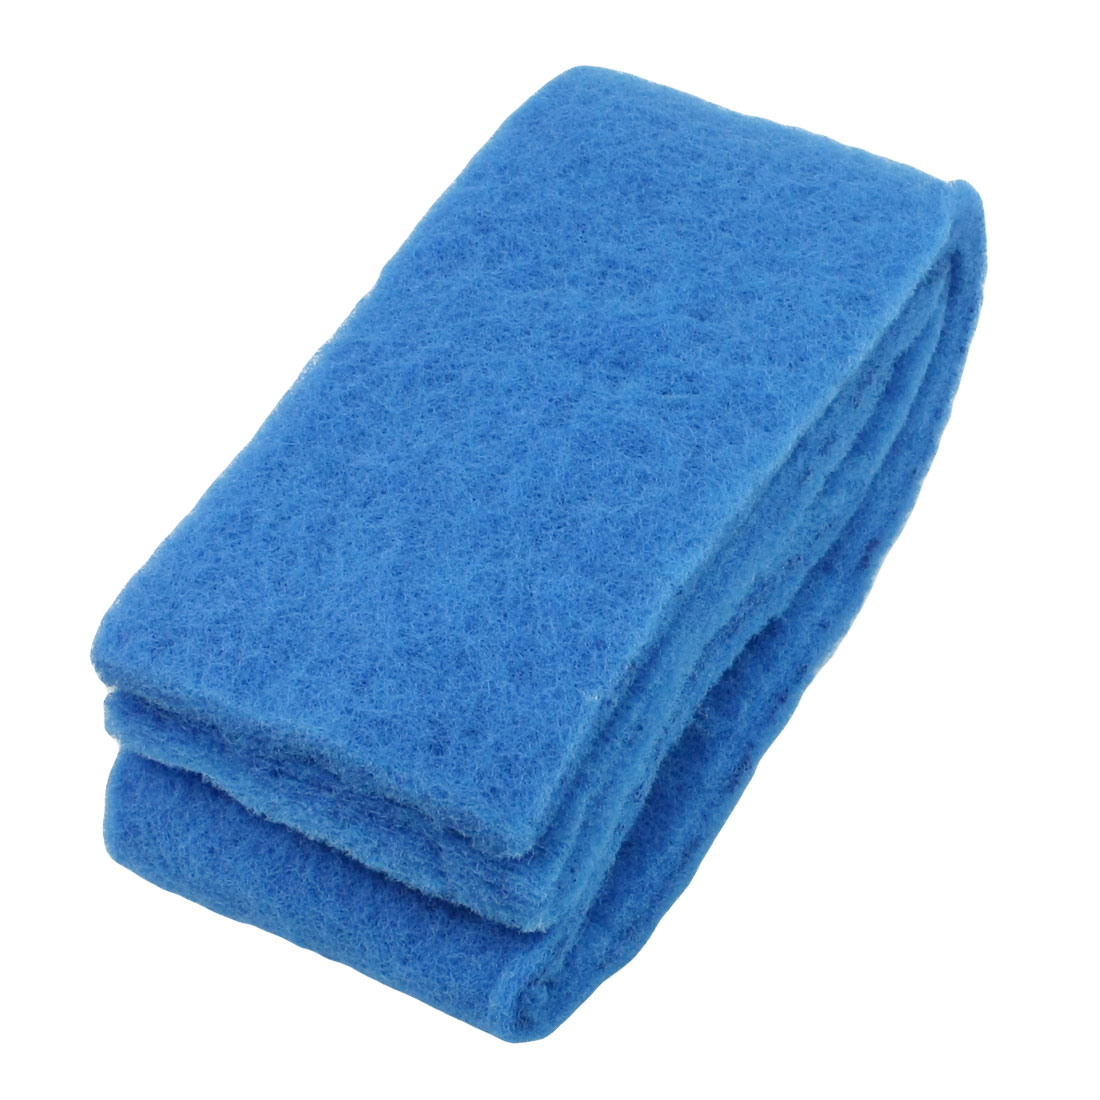 "Blue Rectangle Sponge Filter Fresh Water Aquarium Filter 39.8"" Long 2Pcs"